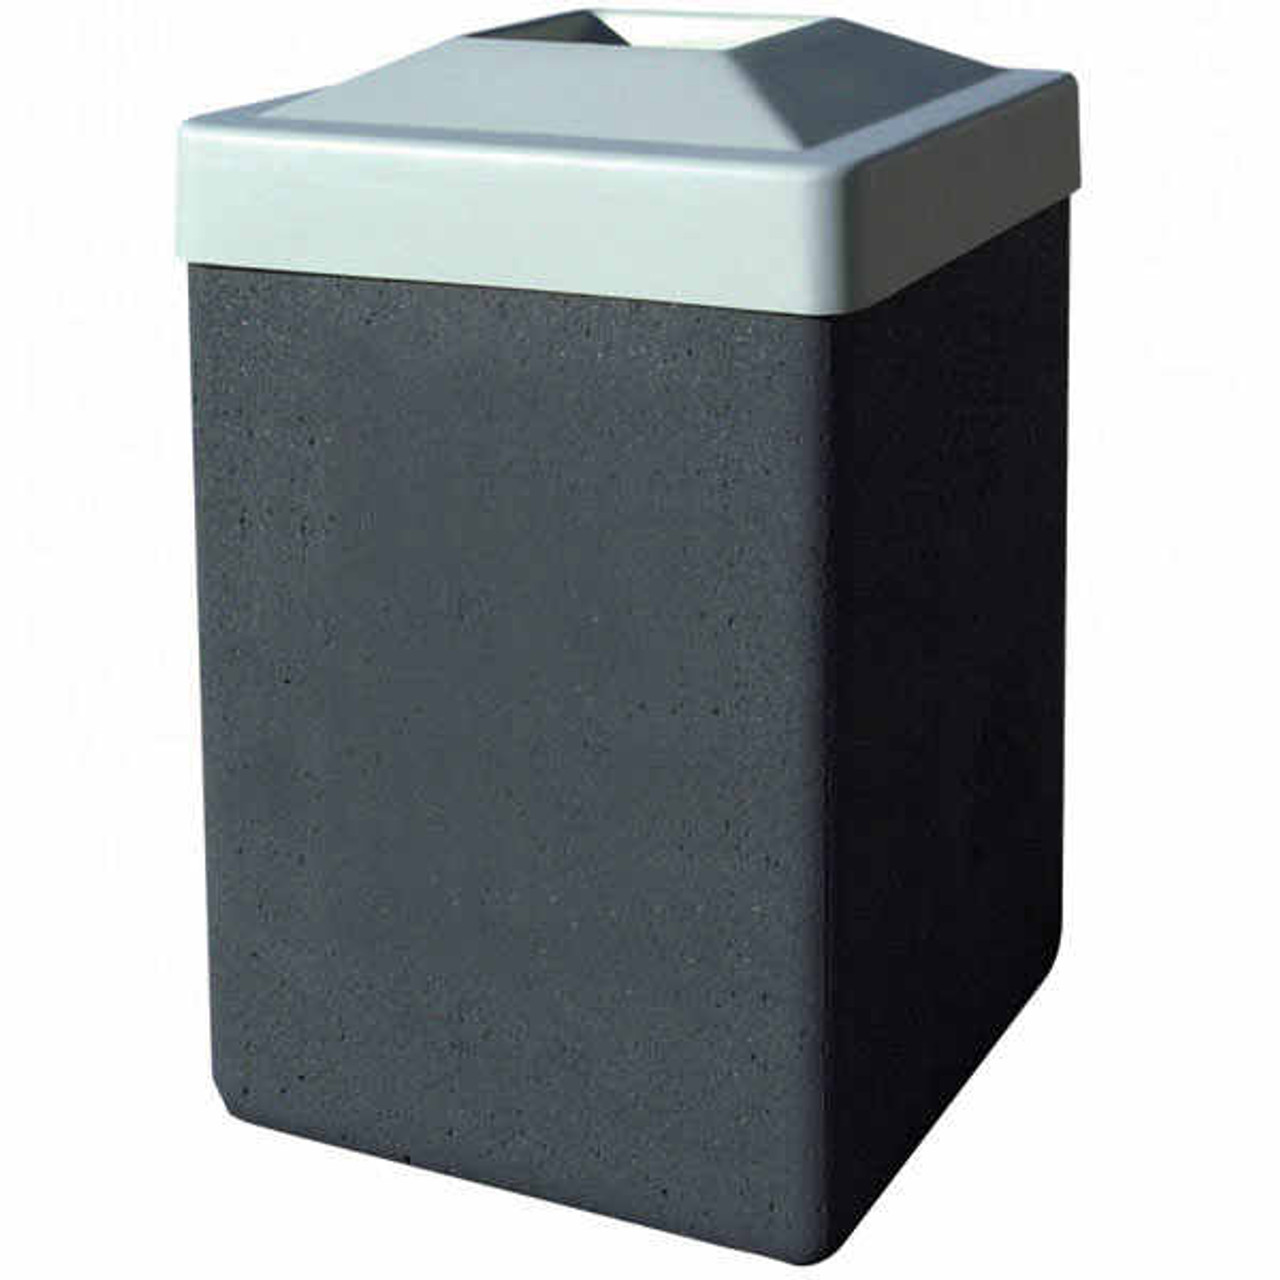 53 Gallon Concrete Pitch In Top Outdoor Waste Container TF1025 Wethaerstone Charcoal